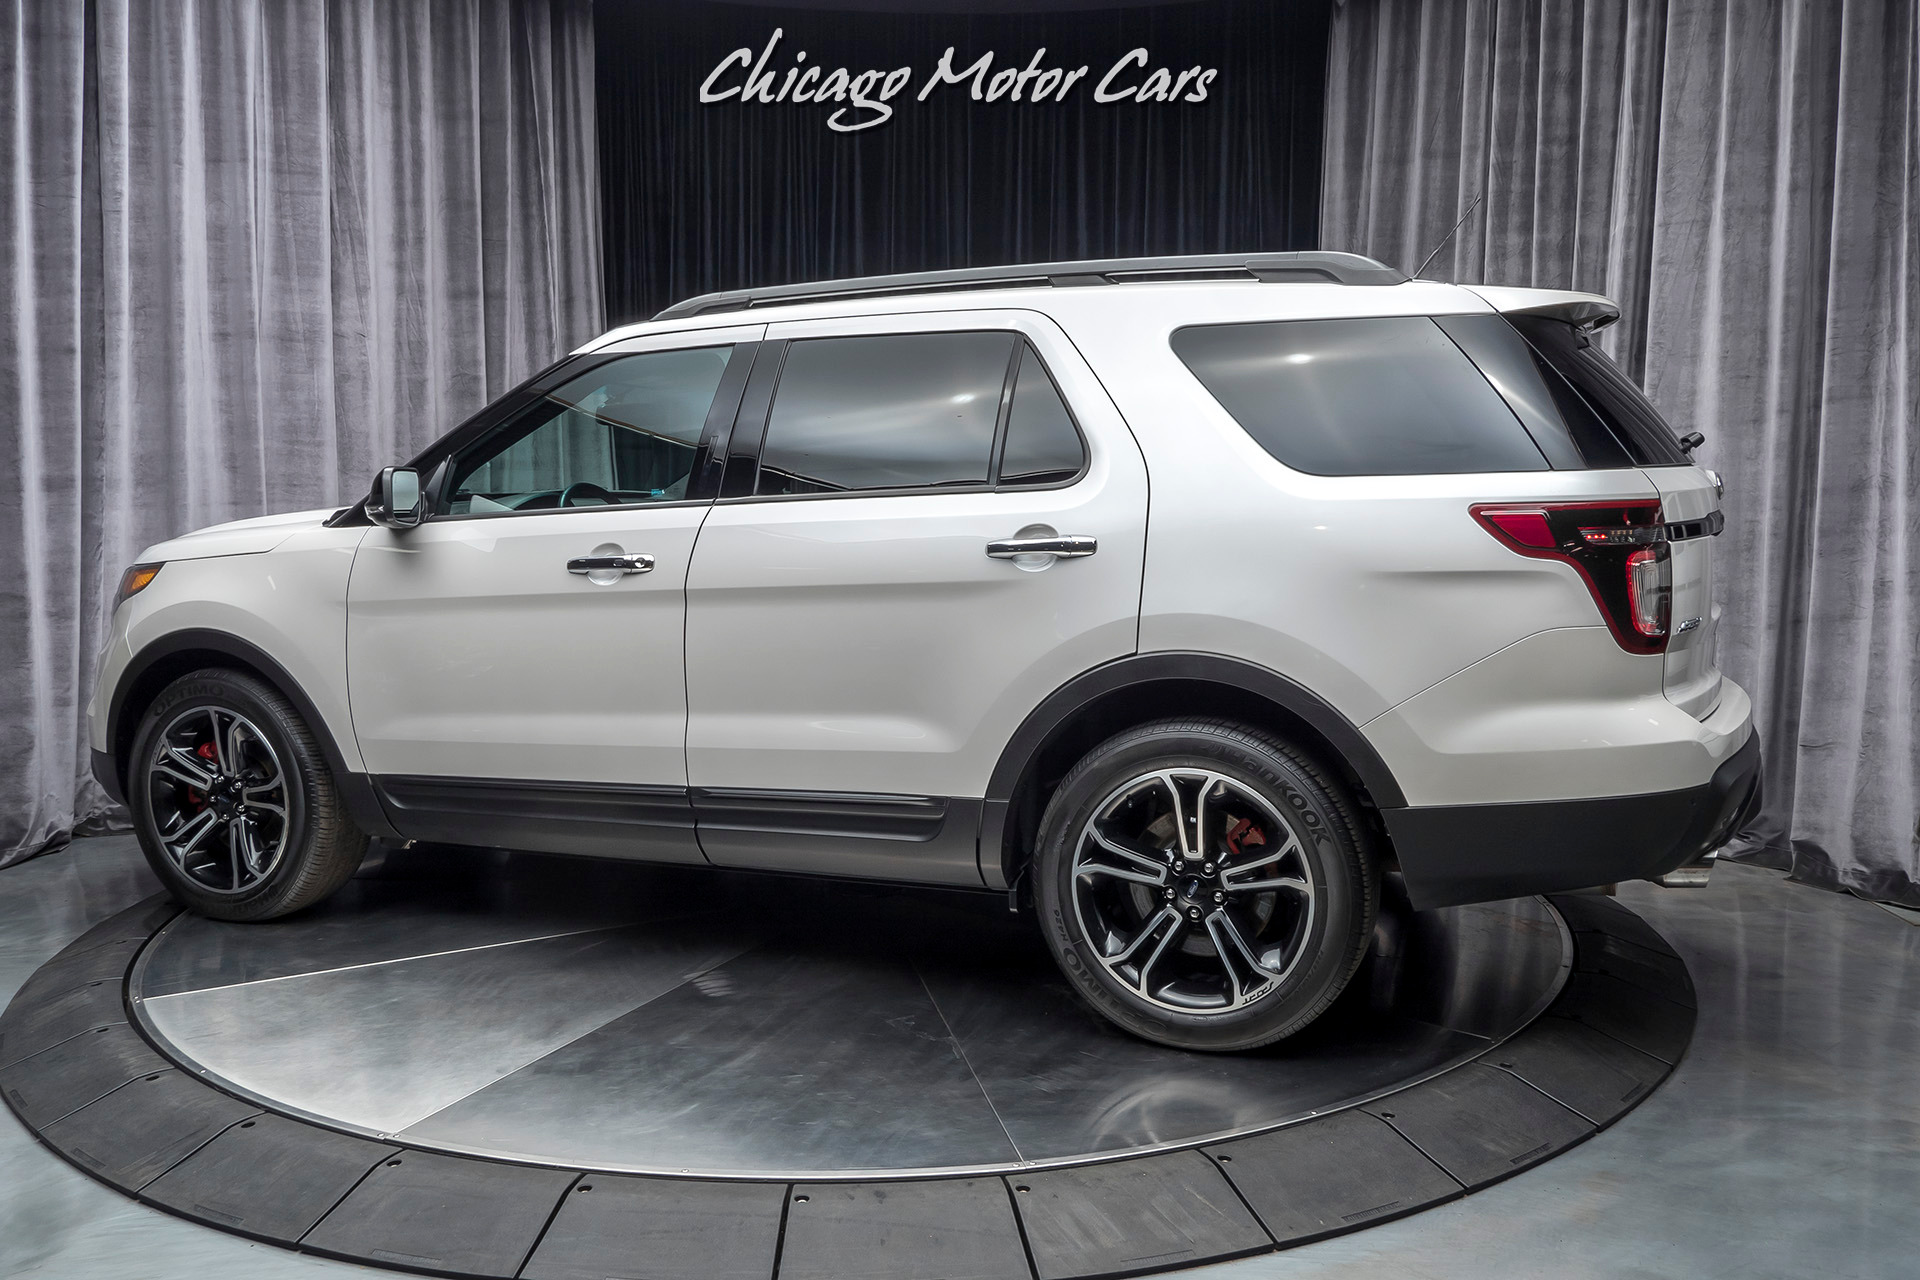 Used-2014-Ford-Explorer-Sport-Ecoboost-AWD-REAR-DVD-ONLY-22K-MILES